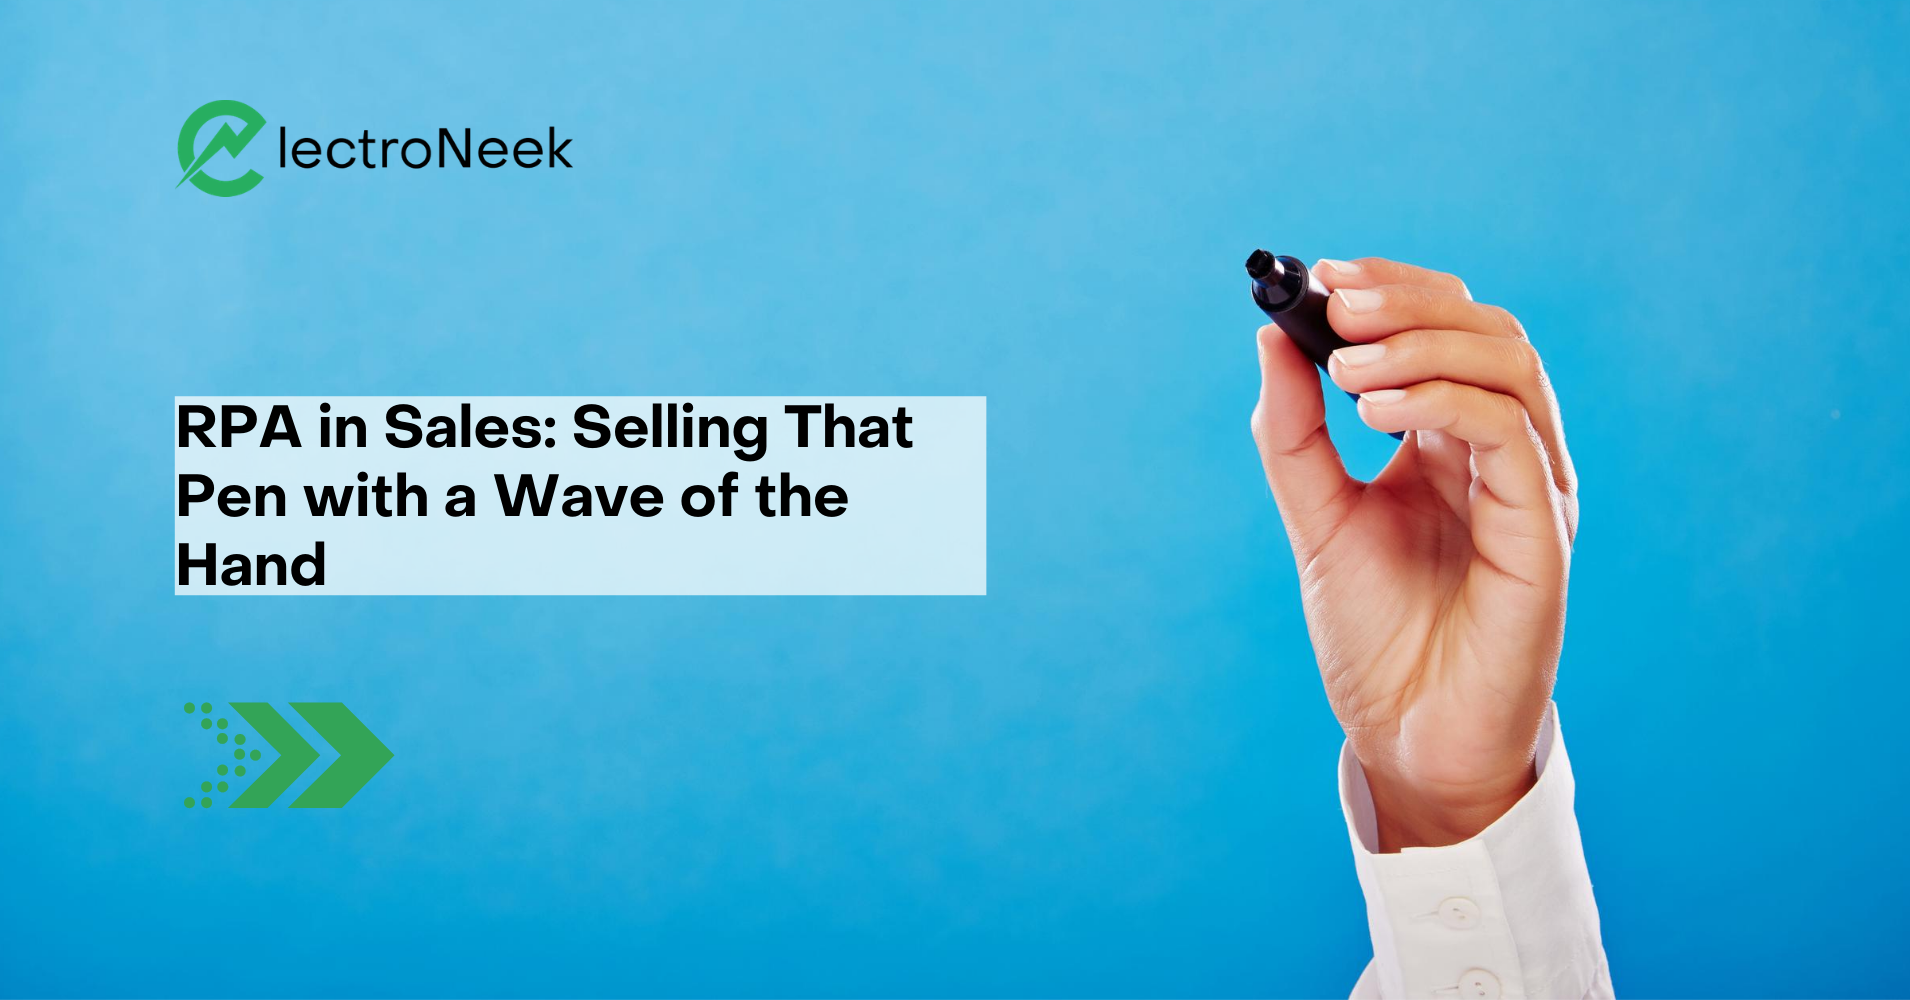 RPA in Sales: Selling That Pen with a Wave of the Hand